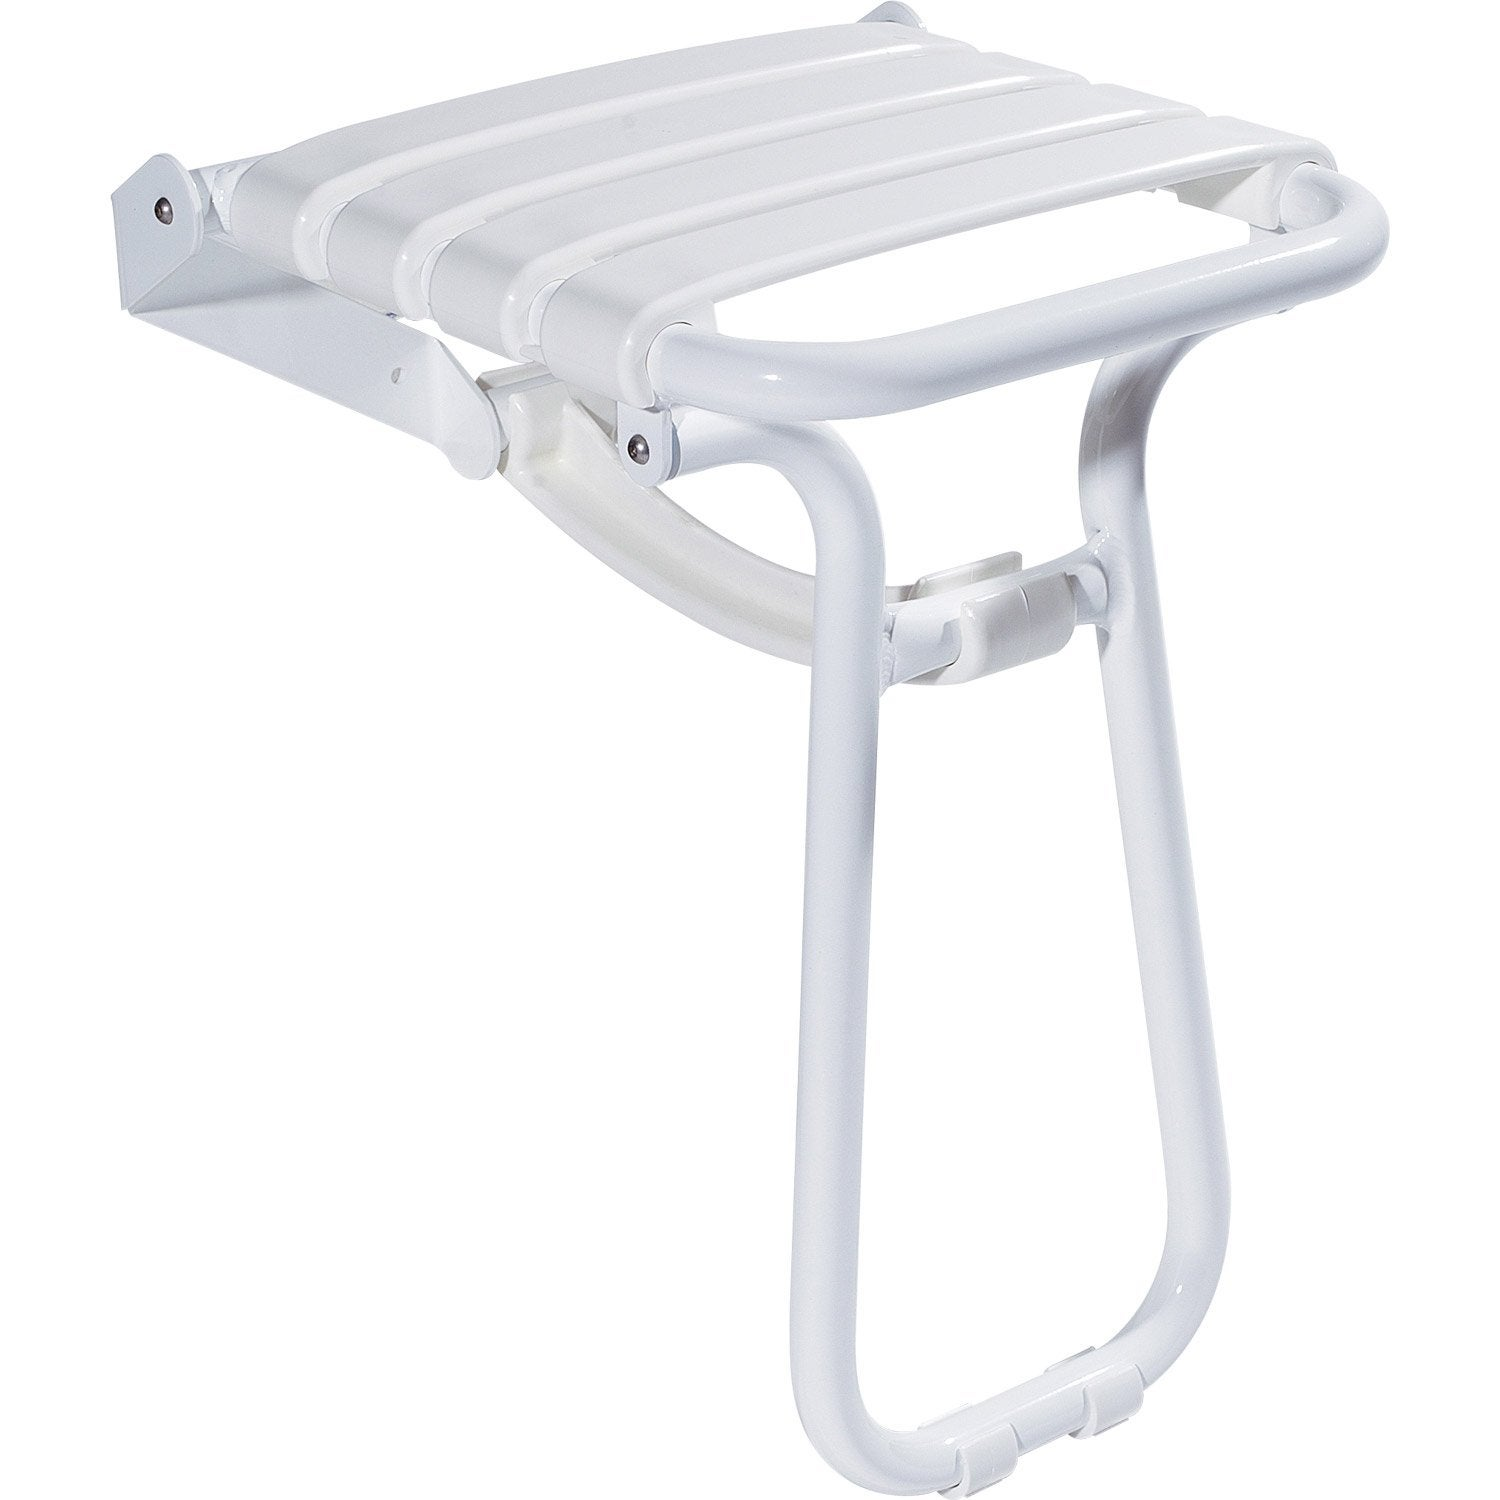 Tabouret de douche leroy merlin for Ensemble de douche leroy merlin